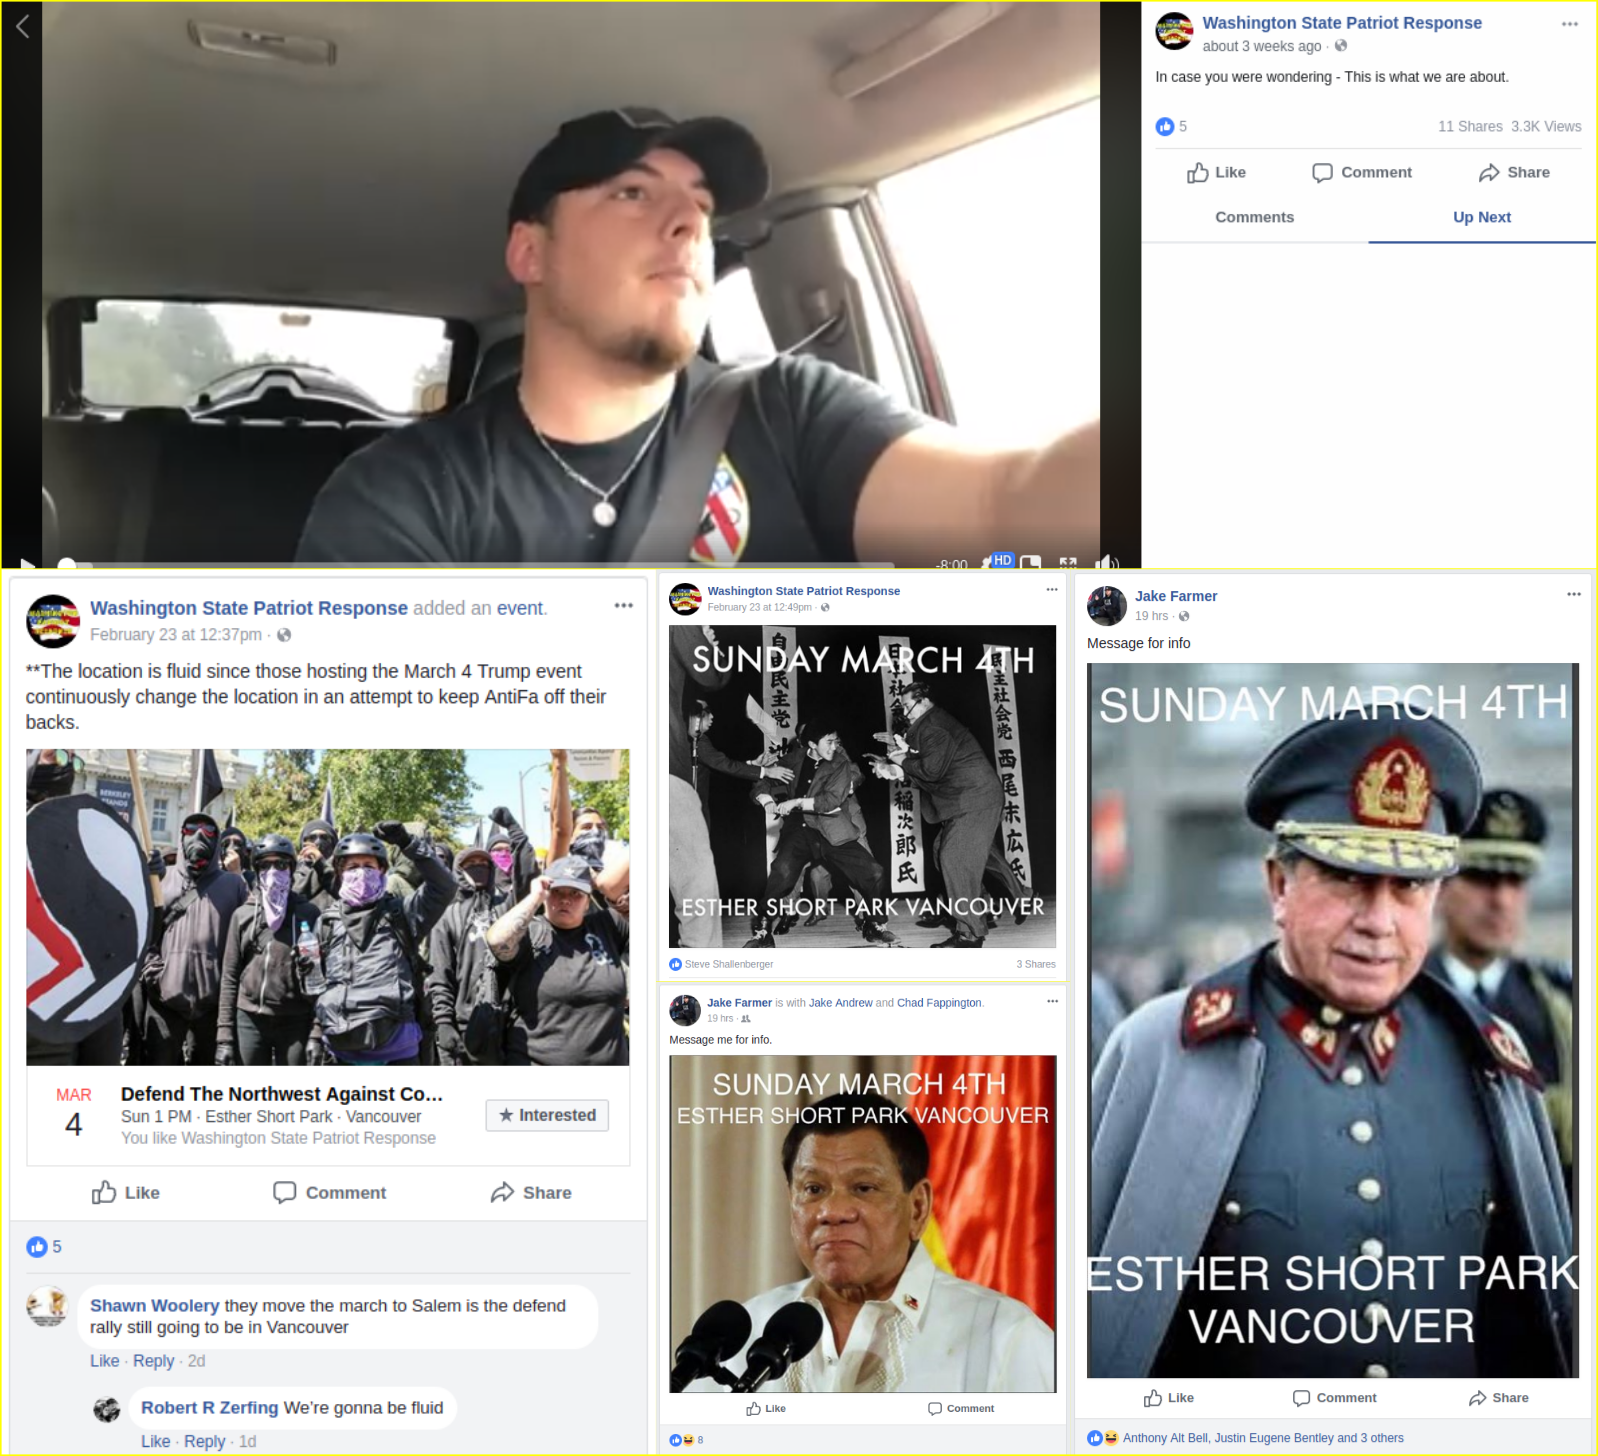 Washington State Patriot Response threatens fascist violence and murder on facebook